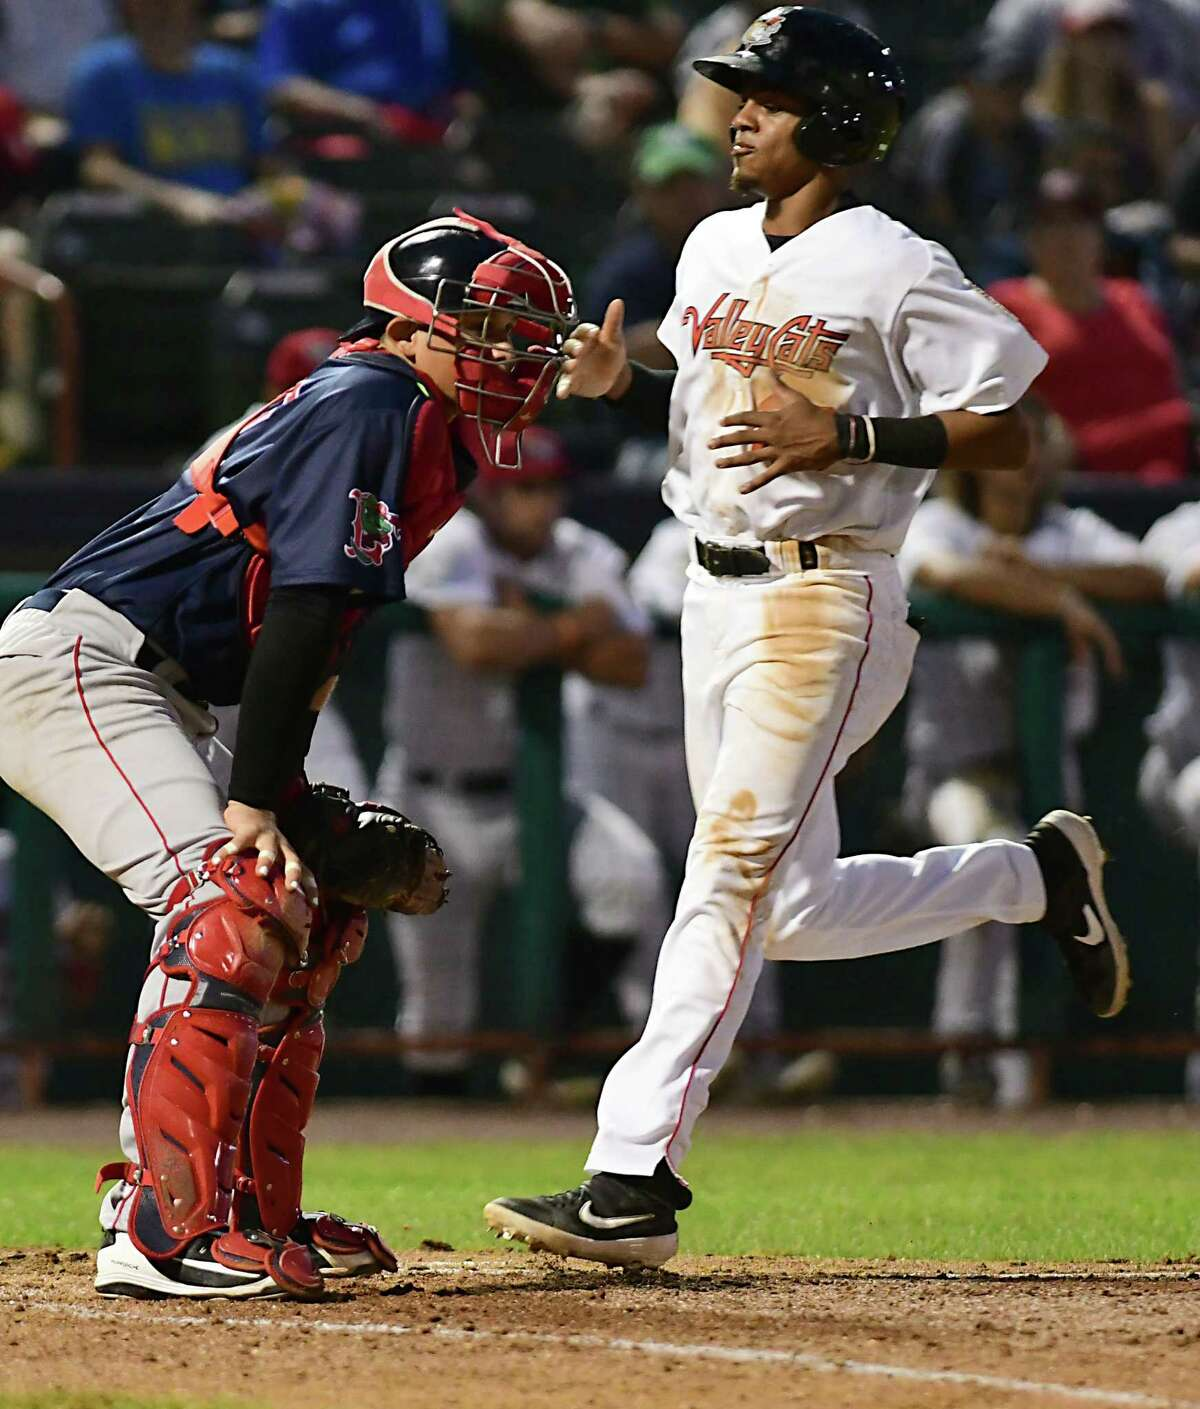 Tri-City ValleyCats AJ Lee is hit in by Luis Guerrero's two run RBI during a baseball game against the Lowell Spinners at Joe Bruno Stadium on Tuesday, Aug. 6, 2019 in Troy, N.Y. (Lori Van Buren/Times Union)